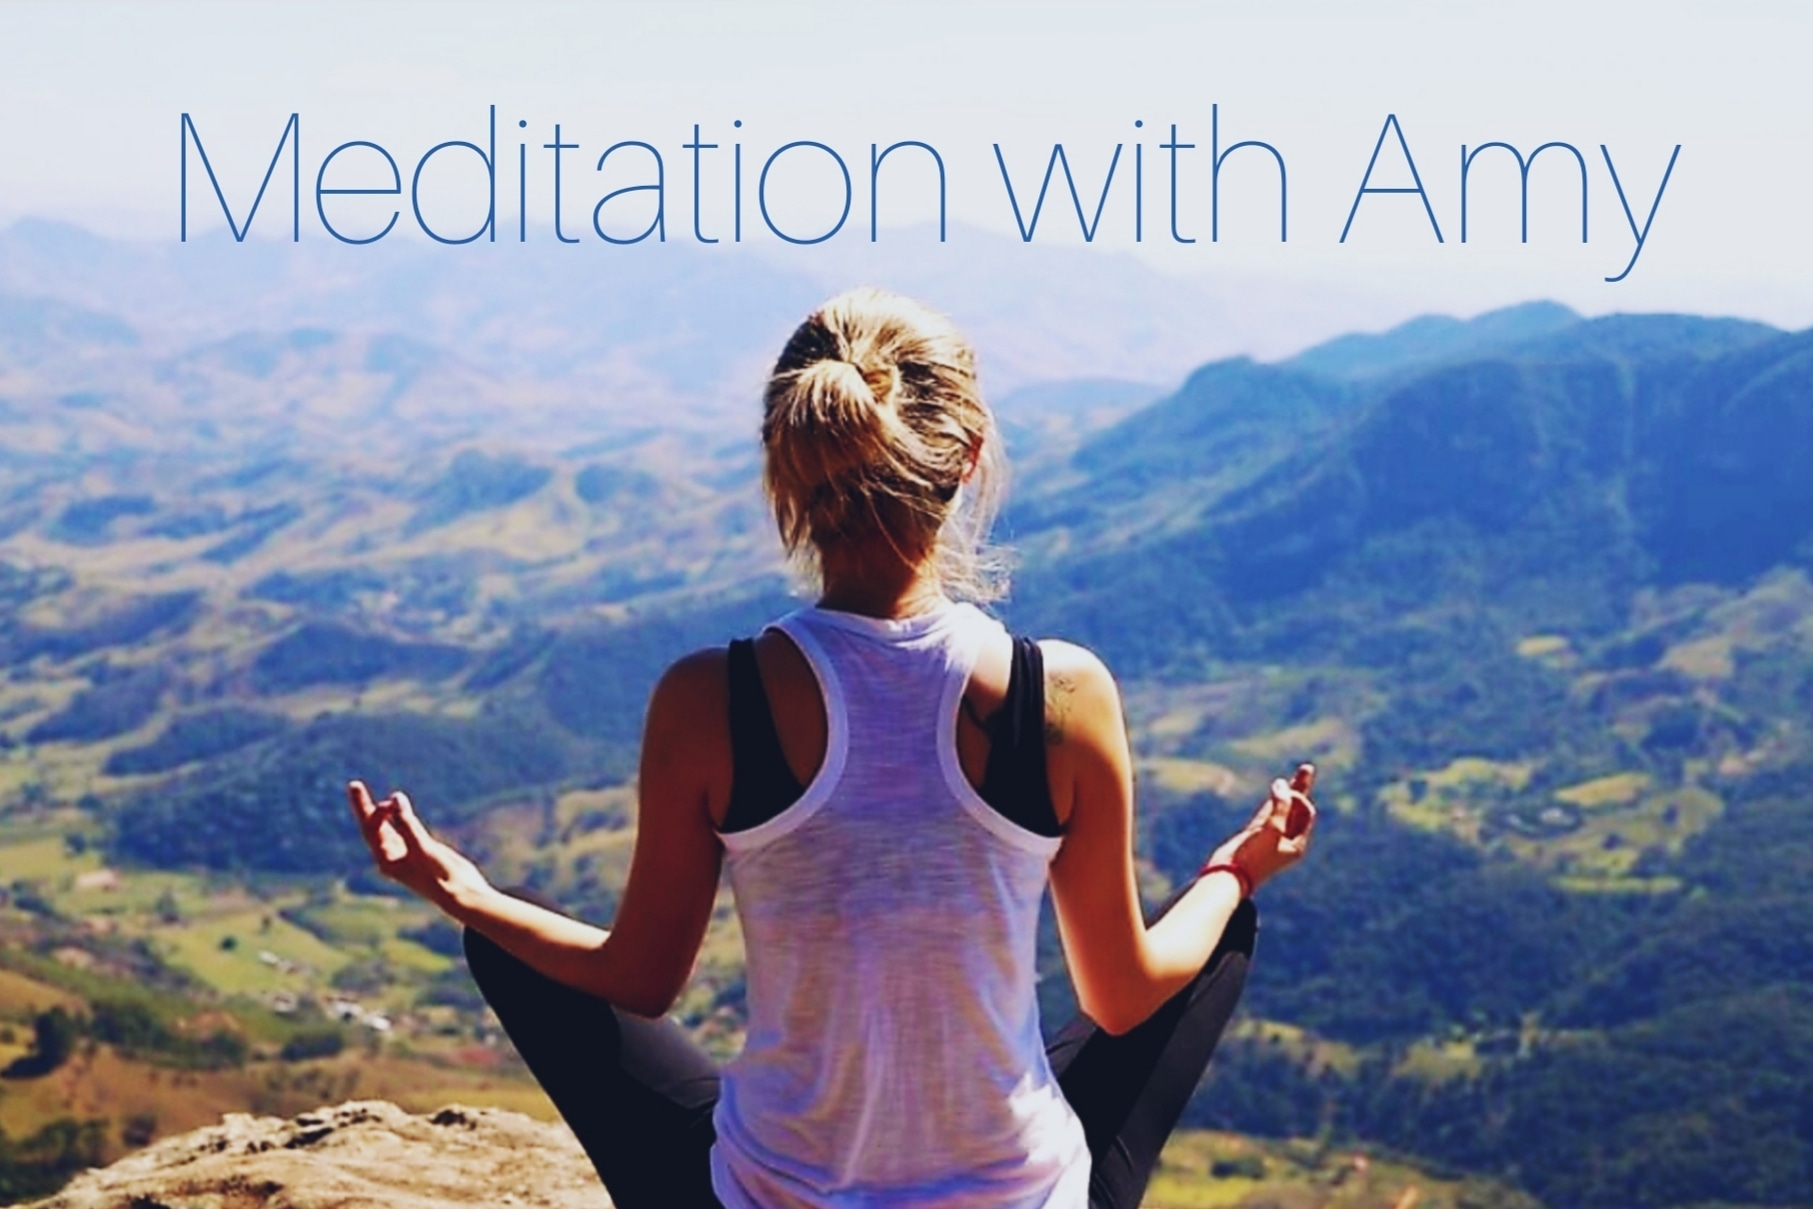 Meditation with Amy